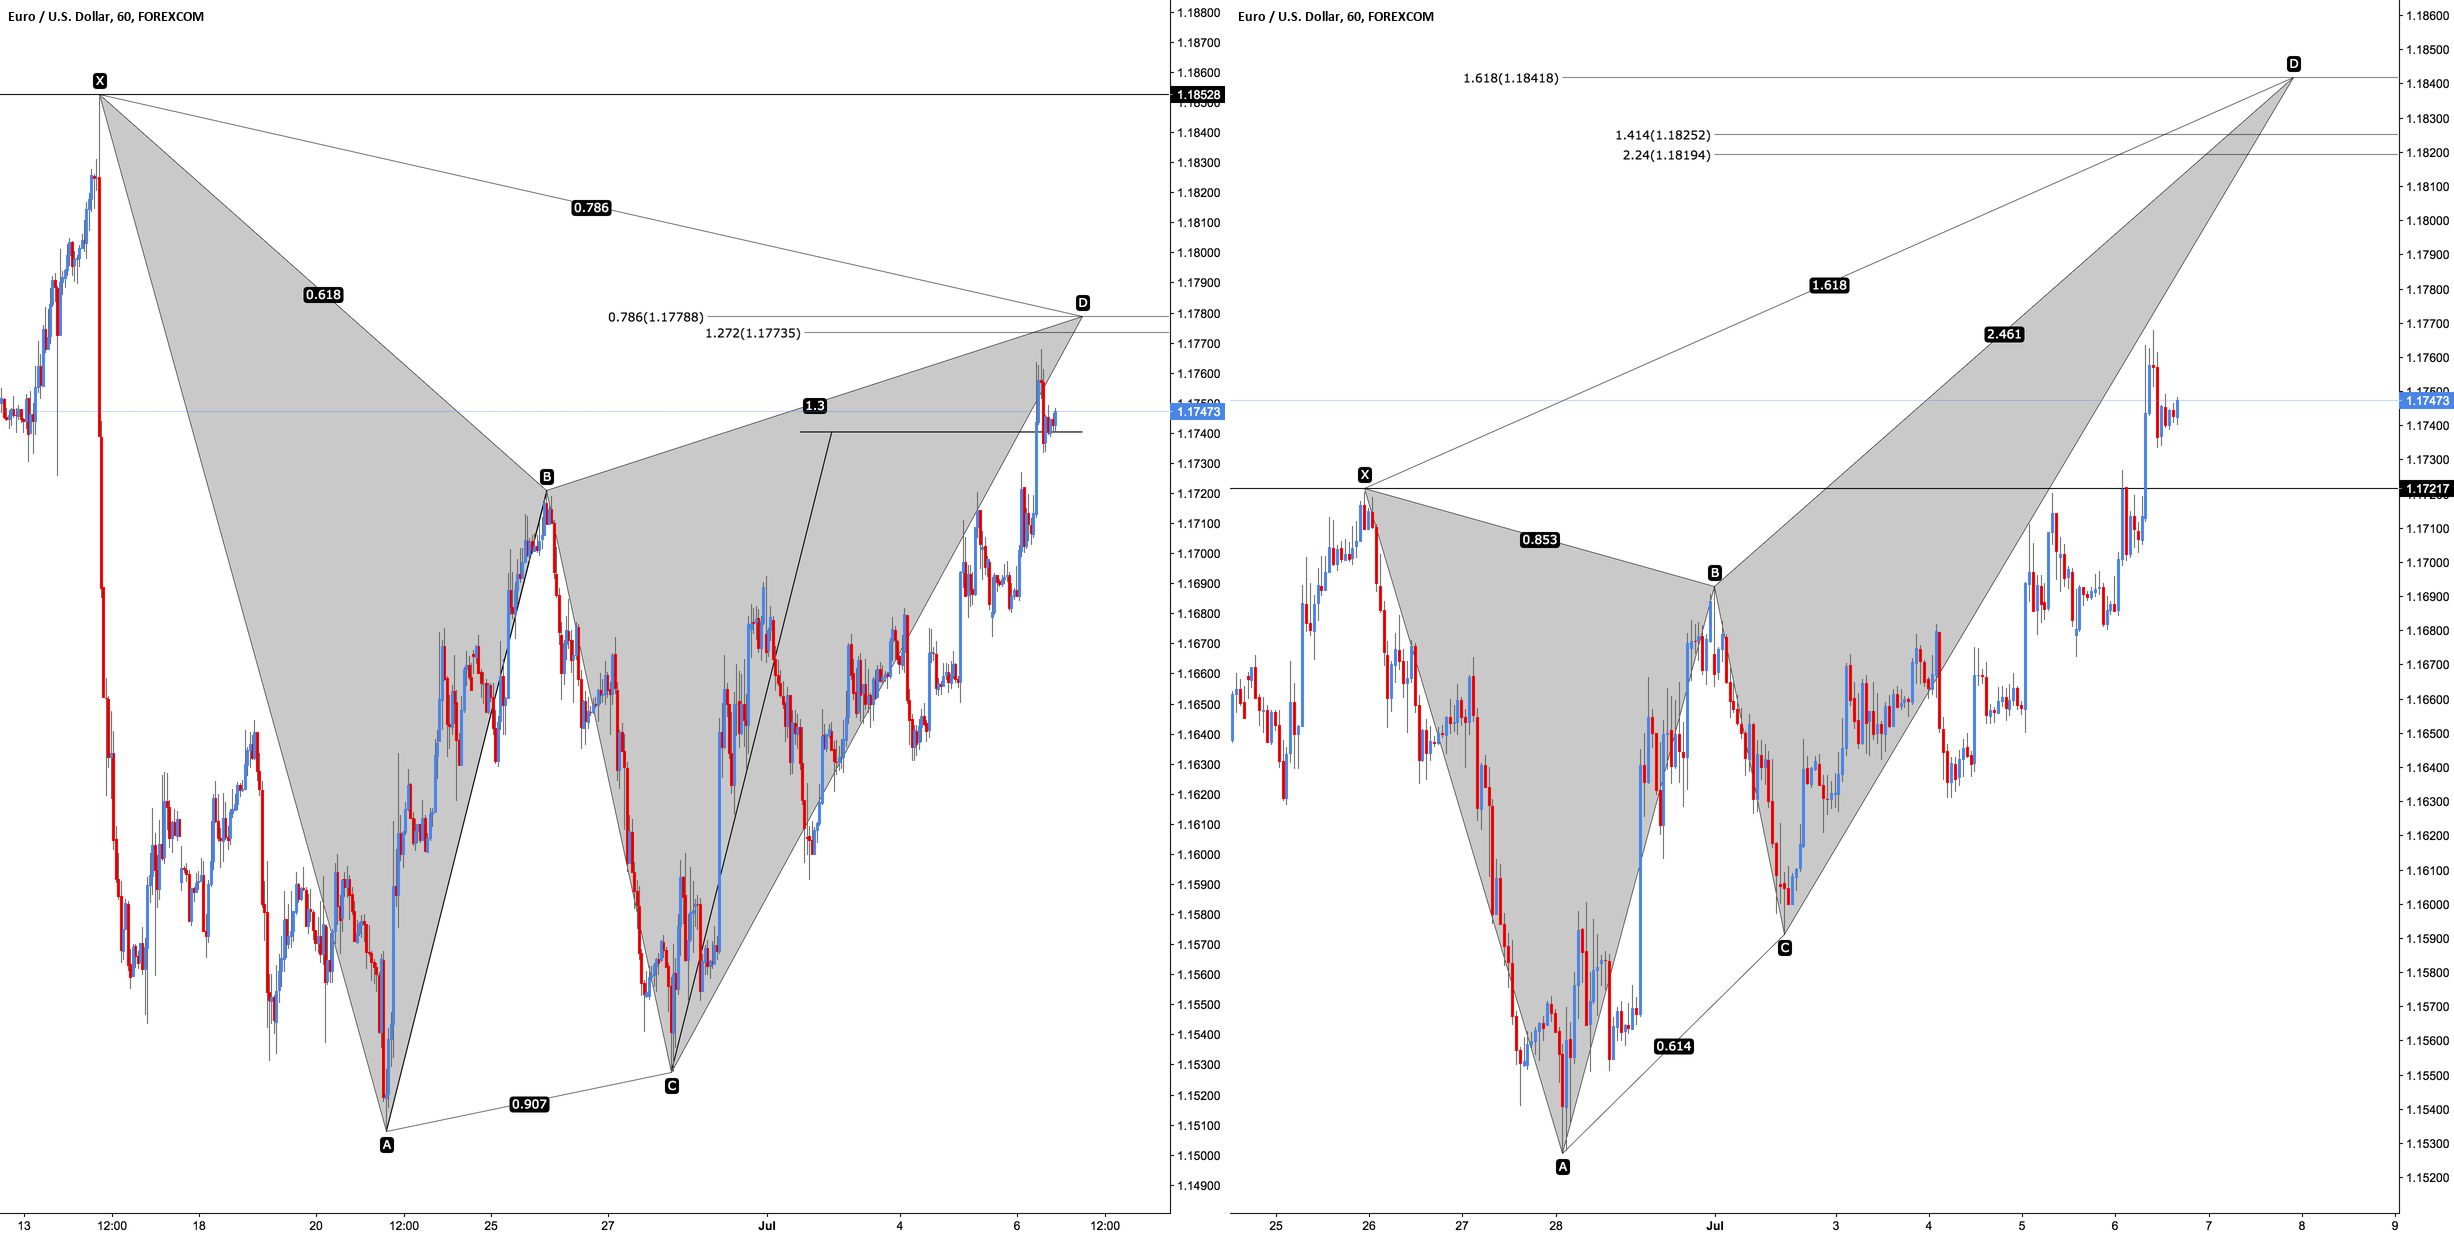 EUR/USD - Two Potential Setups (Gartley and Deep Crab)